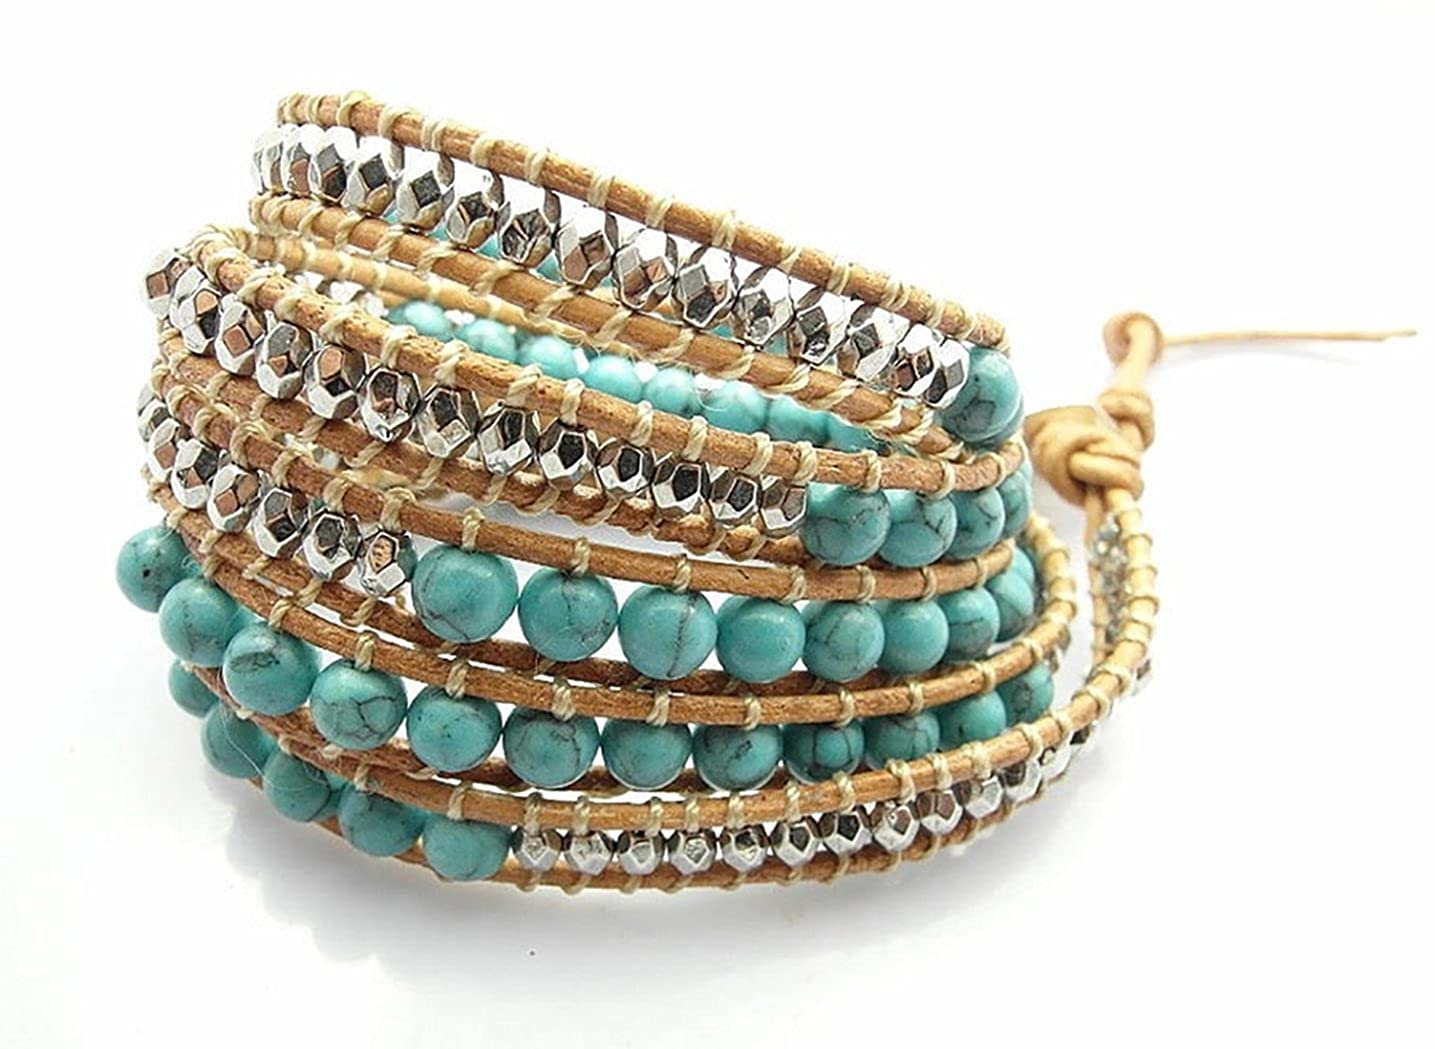 M&B Women's Authentic Turquoise Stone and Silver Bead Wrap Leather Bracelet or Accessory (Authentic Turquoise) 002-000-MB